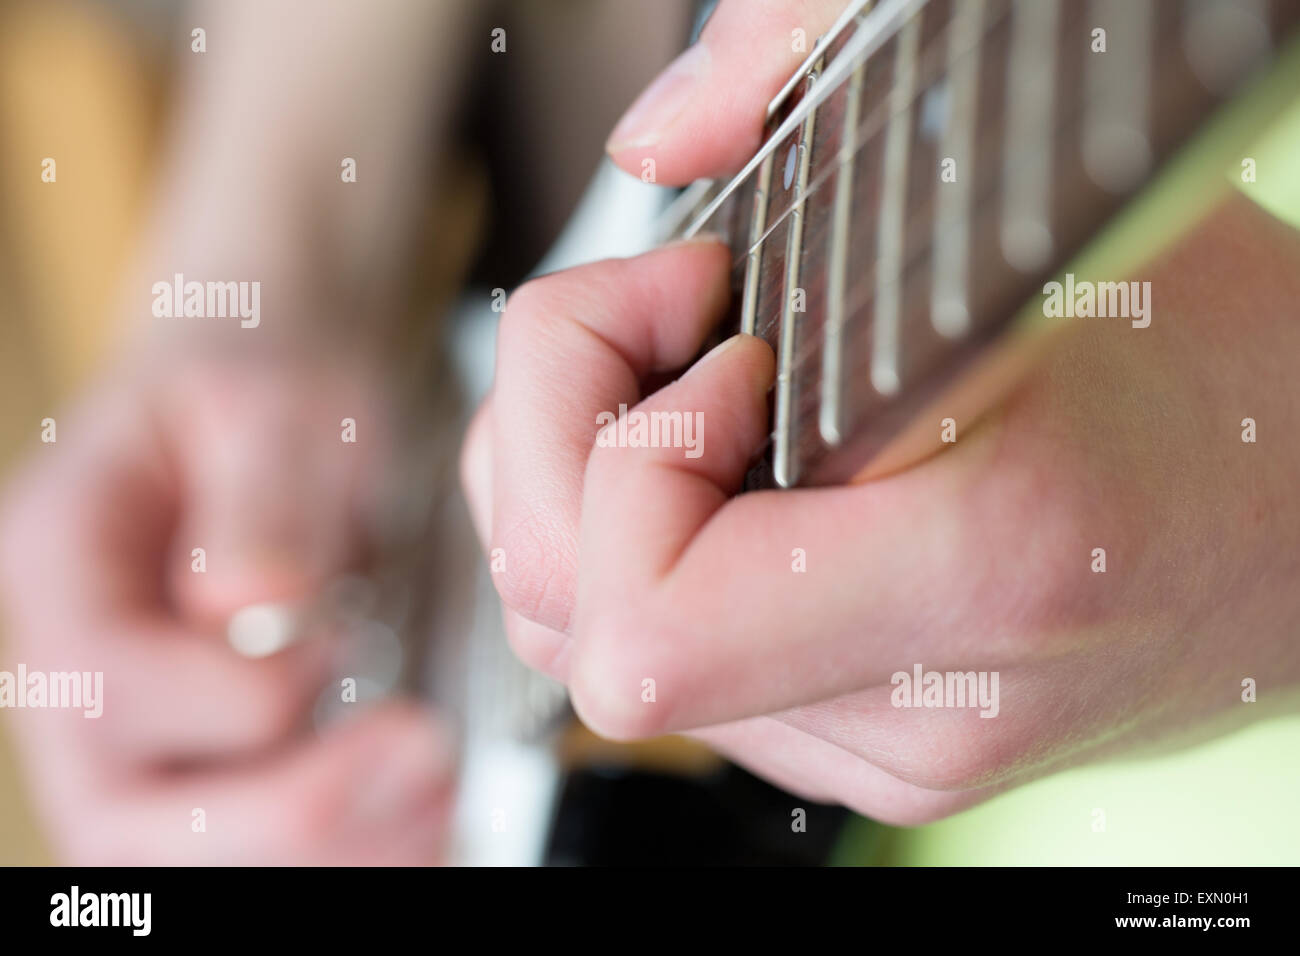 close-up-of-a-chord-being-played-on-a-el